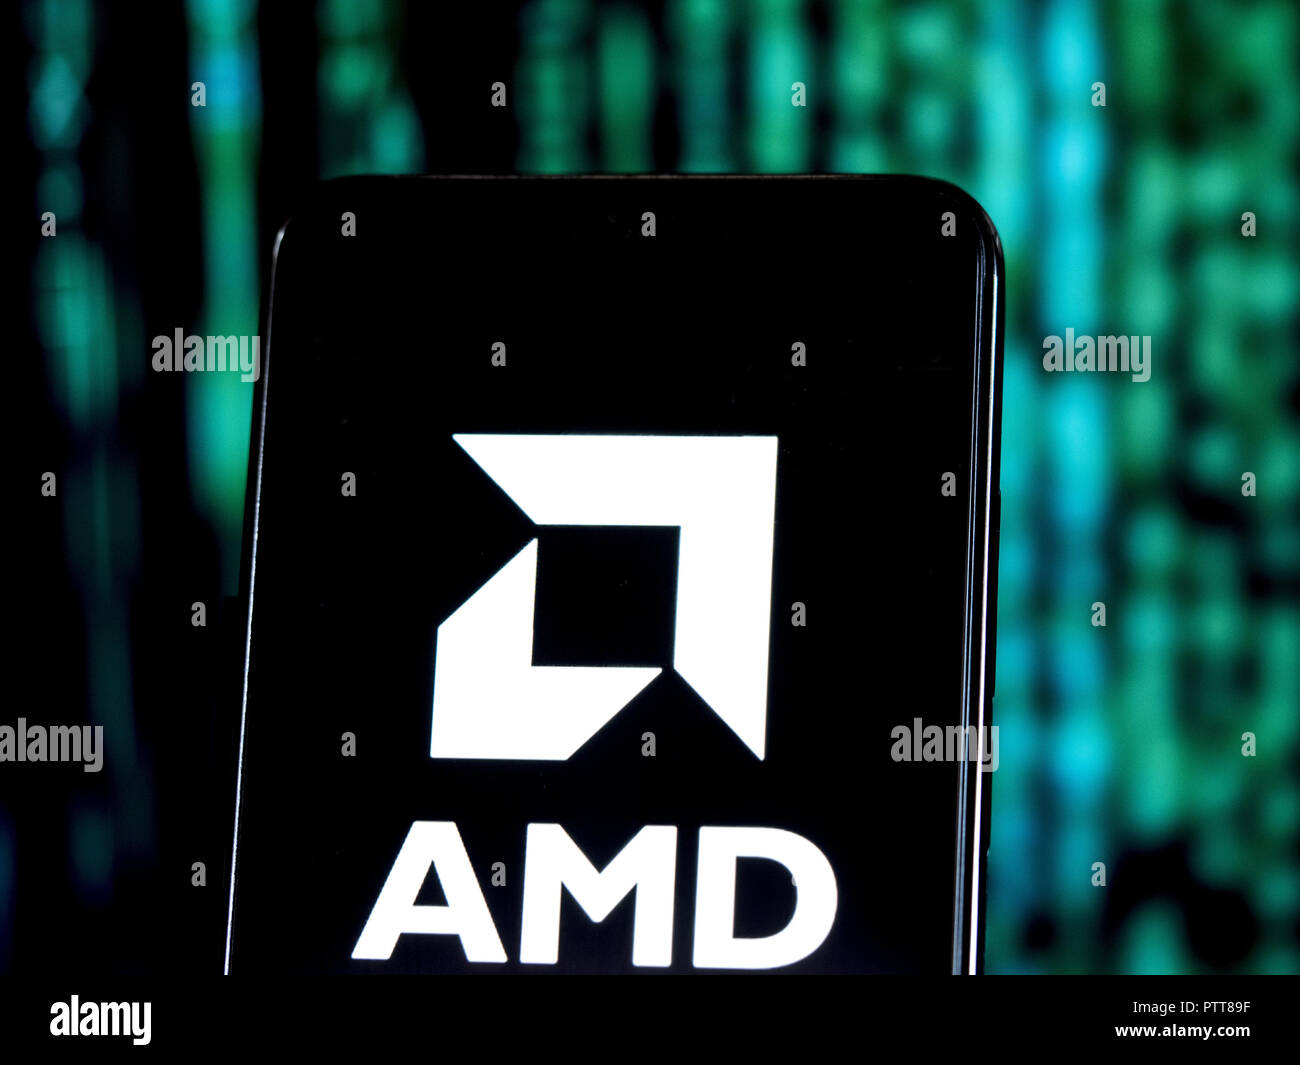 Kiev, Ukraine. 10th Oct, 2018. Advanced Micro Devices logo seen displayed on smart phone. Advanced Micro Devices, Inc. is an American multinational semiconductor company based in Santa Clara, California, that develops computer processors and related technologies for business and consumer markets. Credit: Igor Golovniov/SOPA Images/ZUMA Wire/Alamy Live News - Stock Image